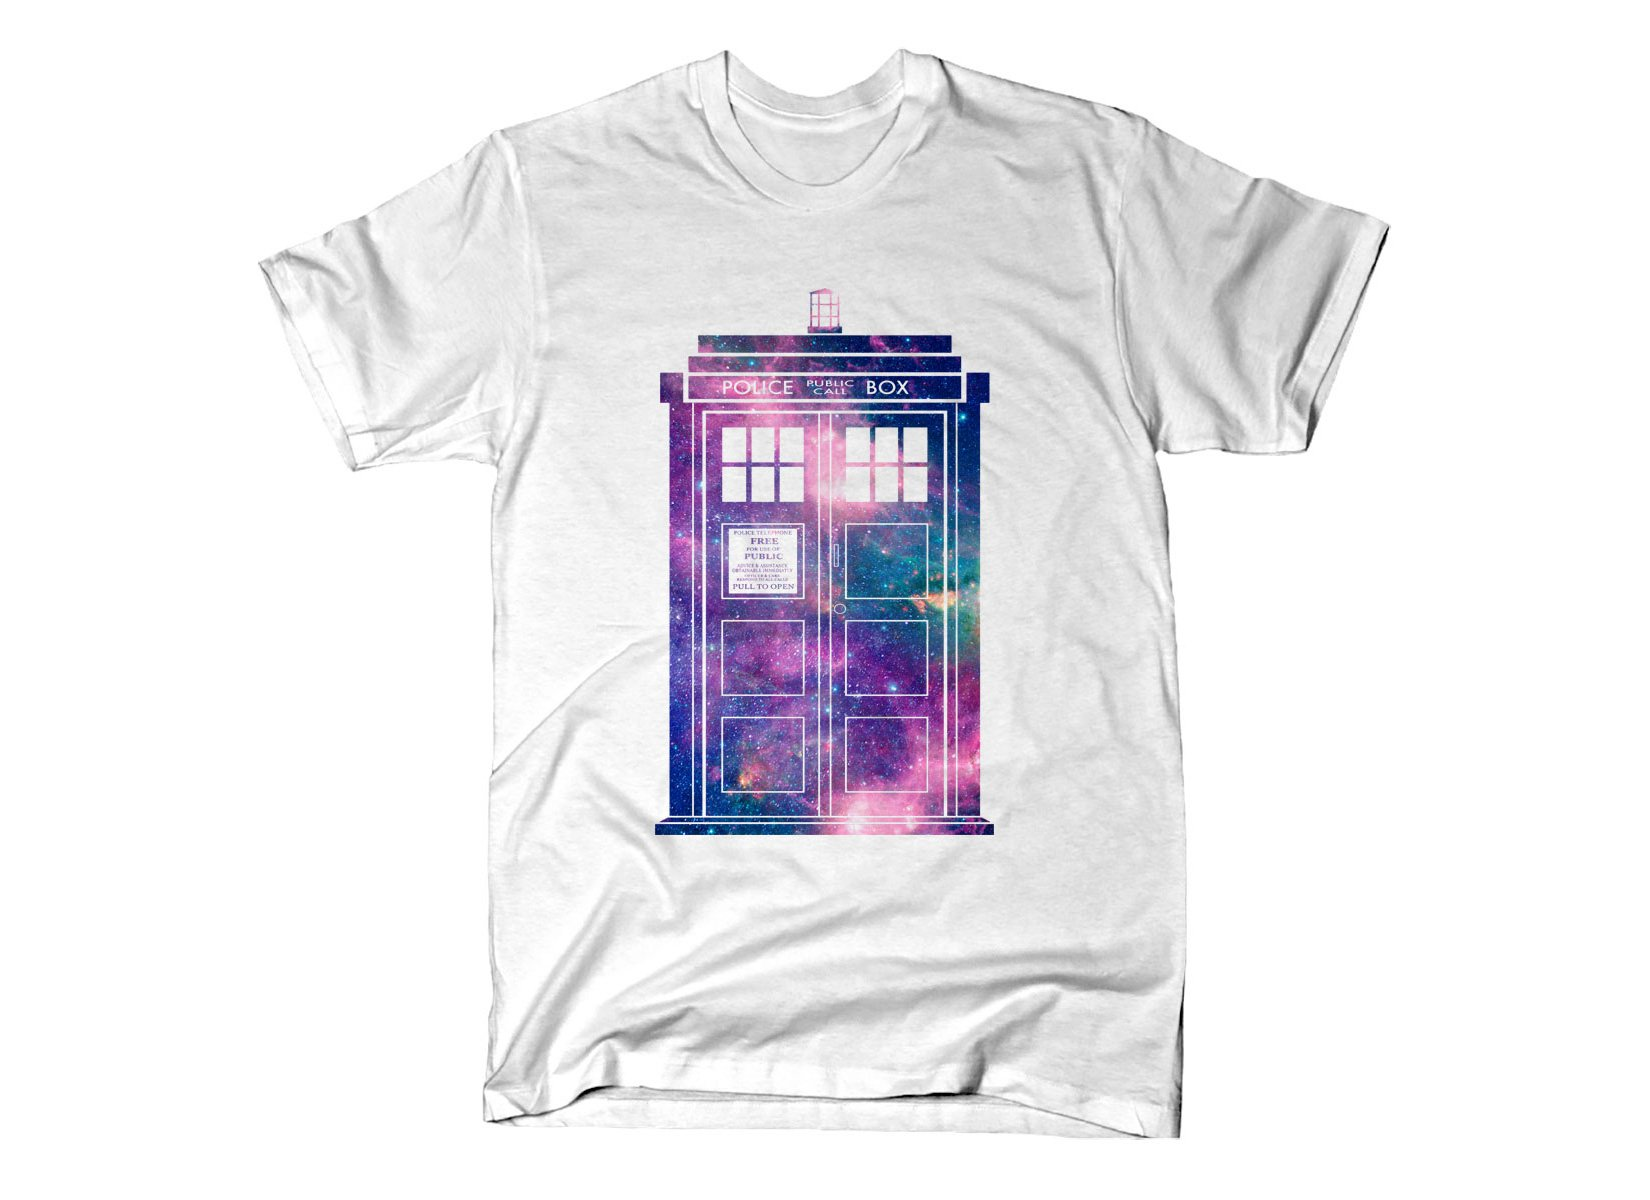 Police Box on Mens T-Shirt